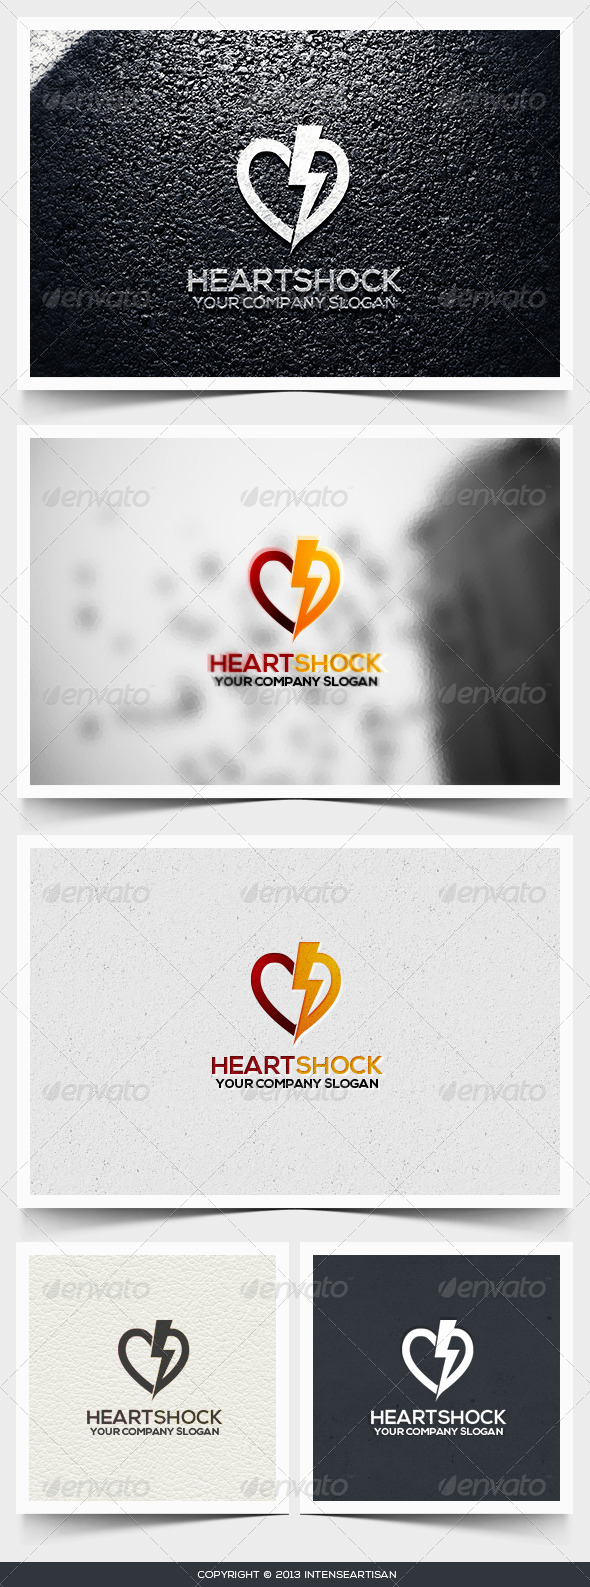 Heart Shock Logo Template - Objects Logo Templates